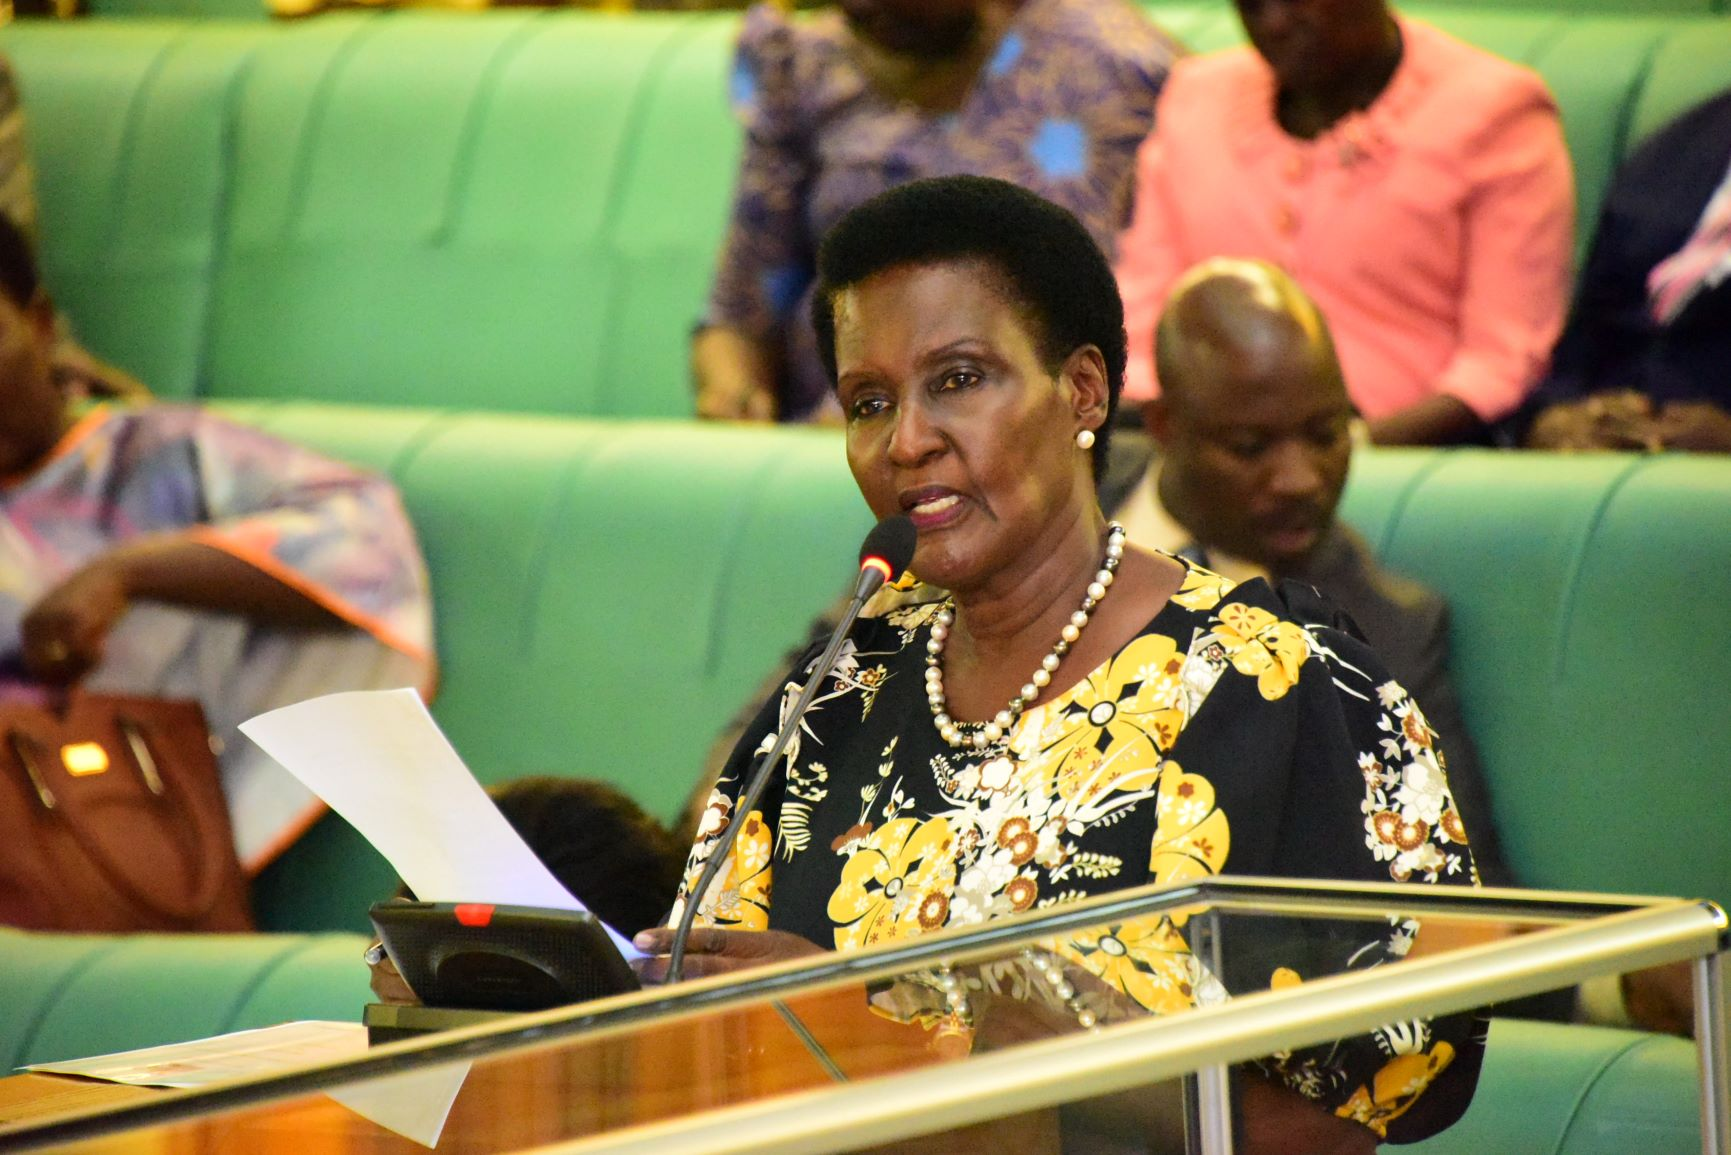 The Minister for Trade, Industry and Cooperatives, Hon. Amelia Kyambadde. Sugarcane saga leaves MPs with bitter taste. (PHOTO/PML)